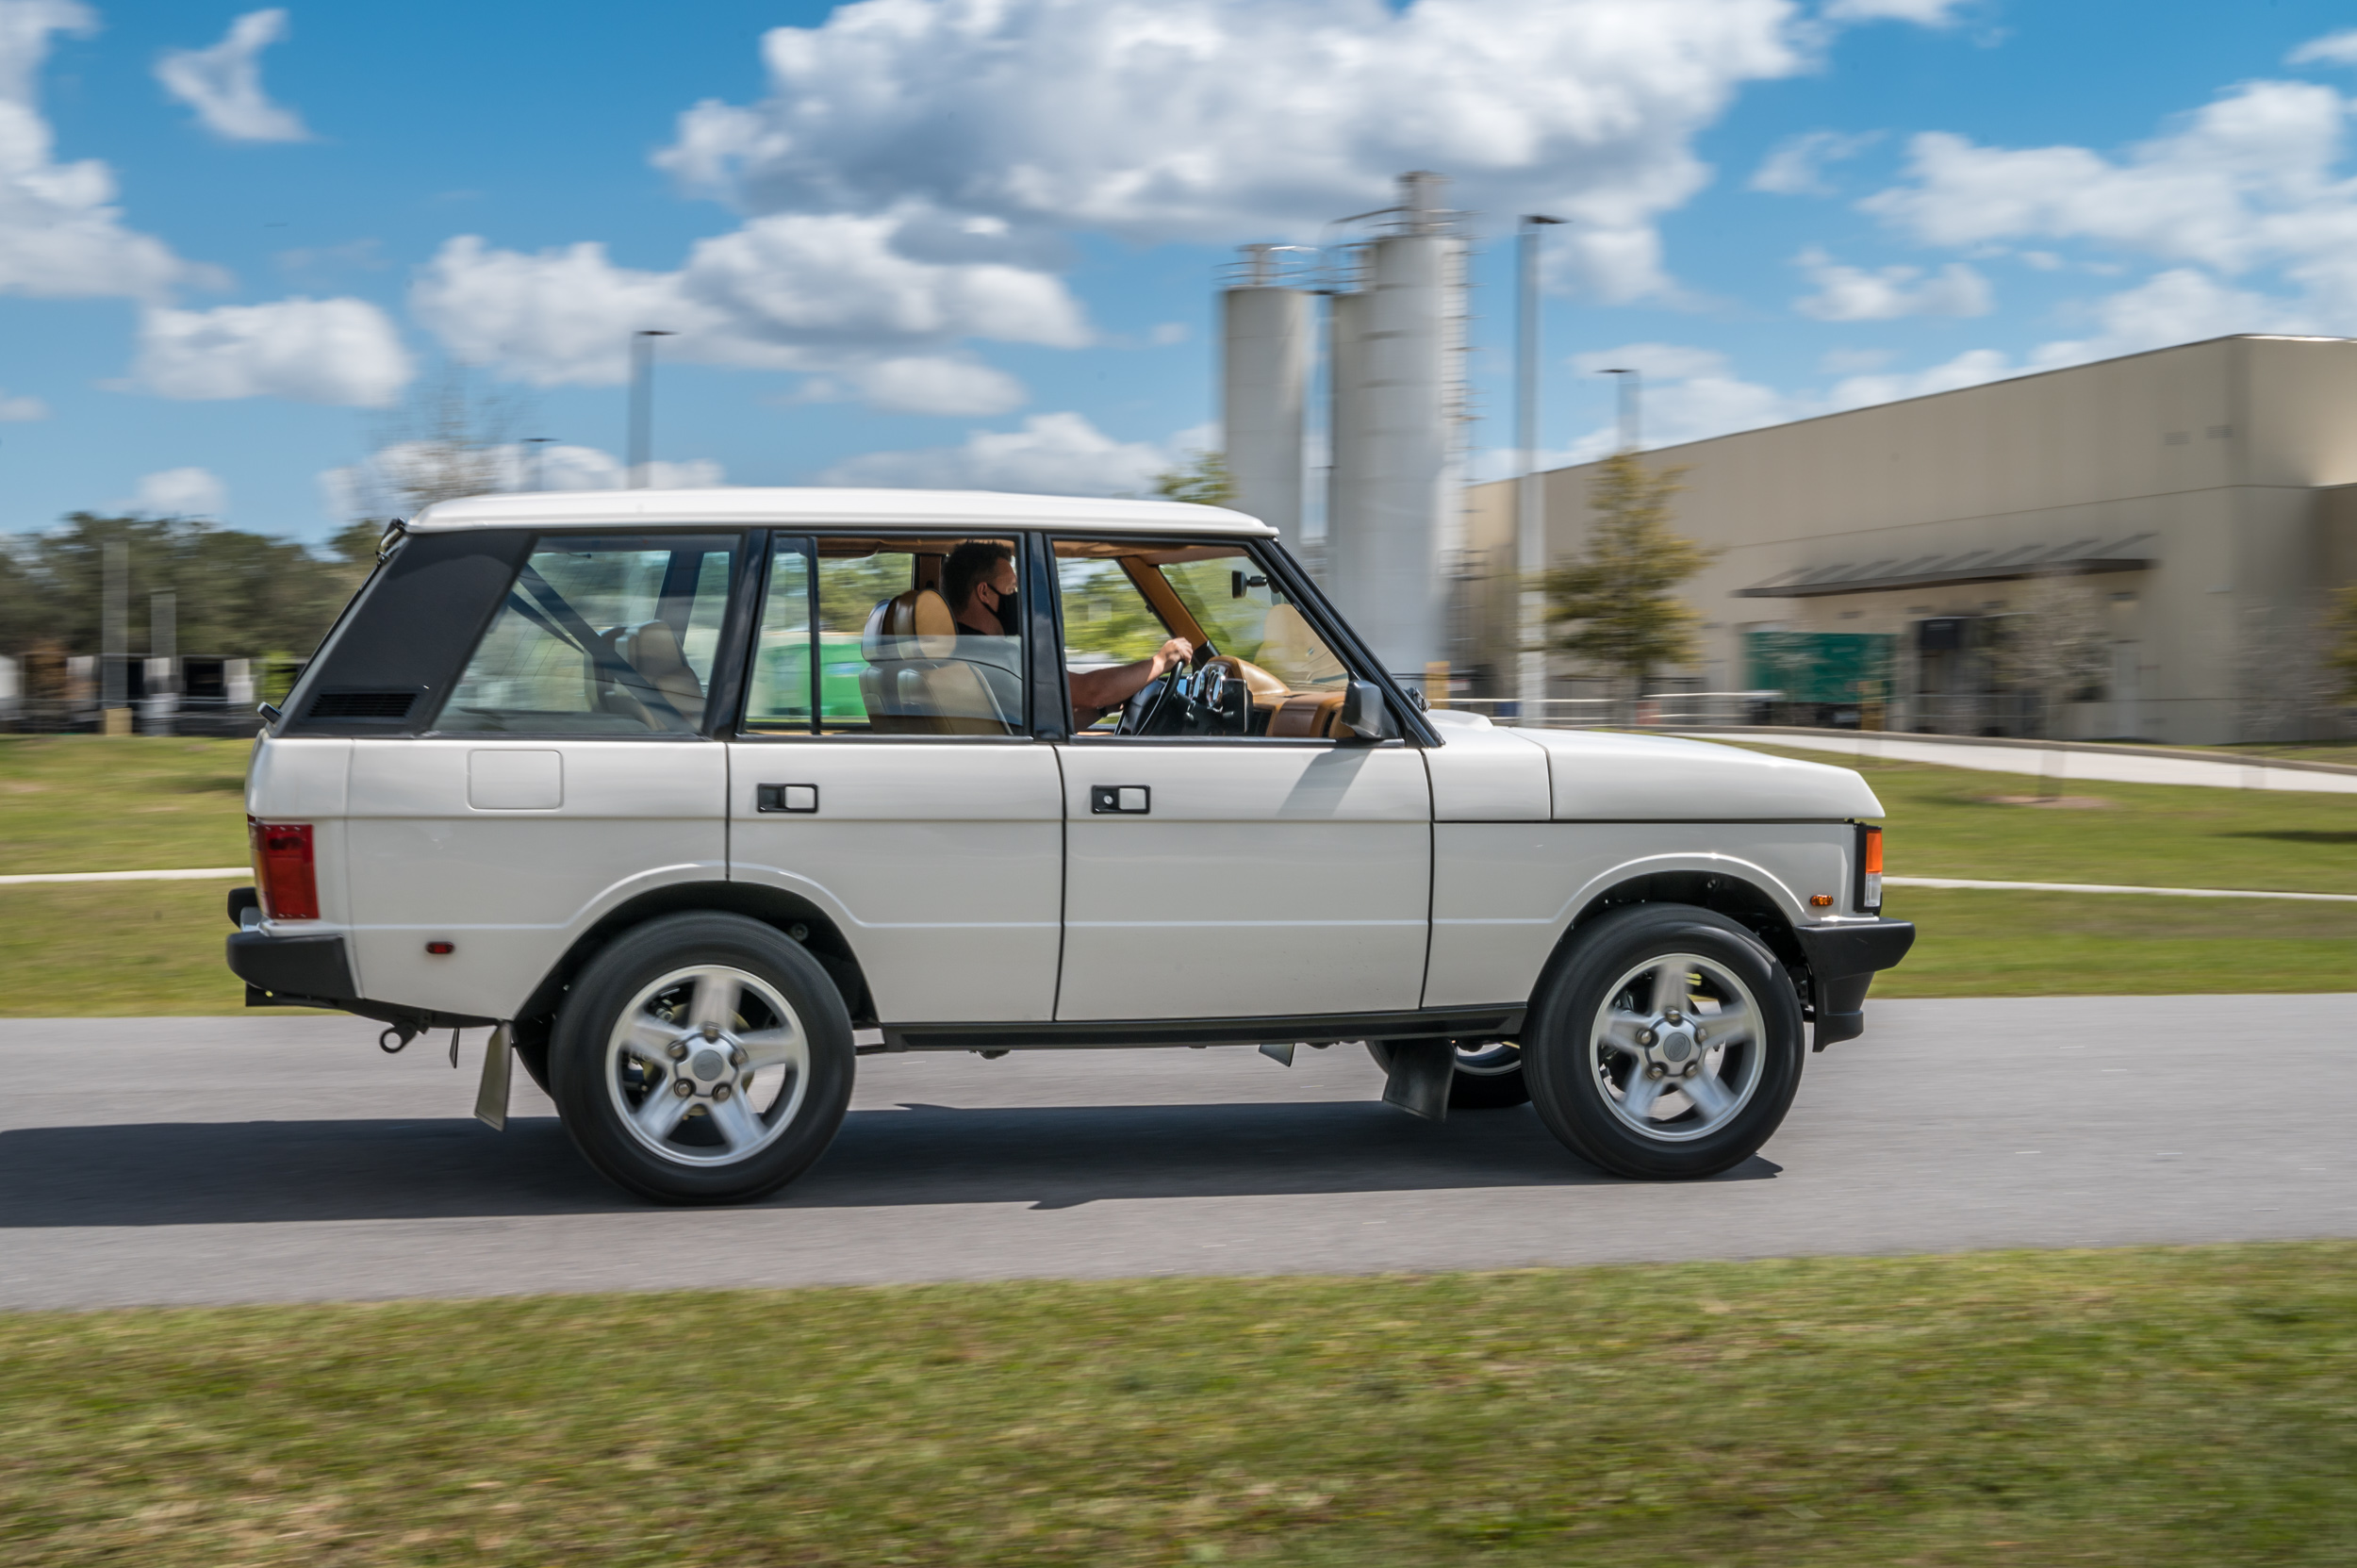 ECD electric Range Rover Classic powered by Tesla